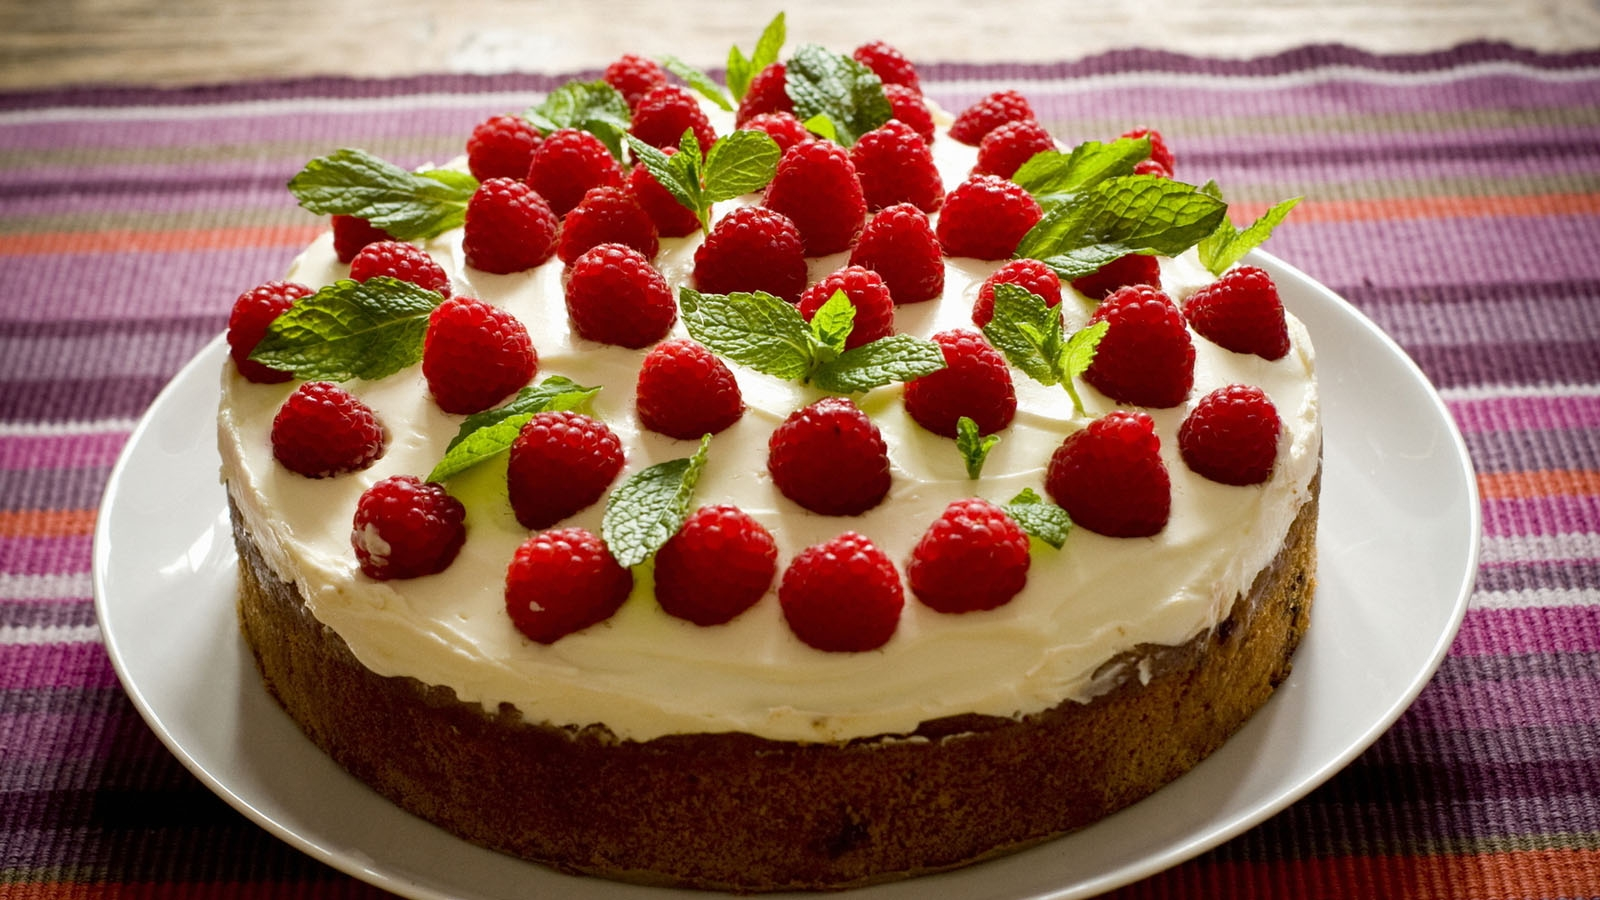 A Pan of Strawberry Cake